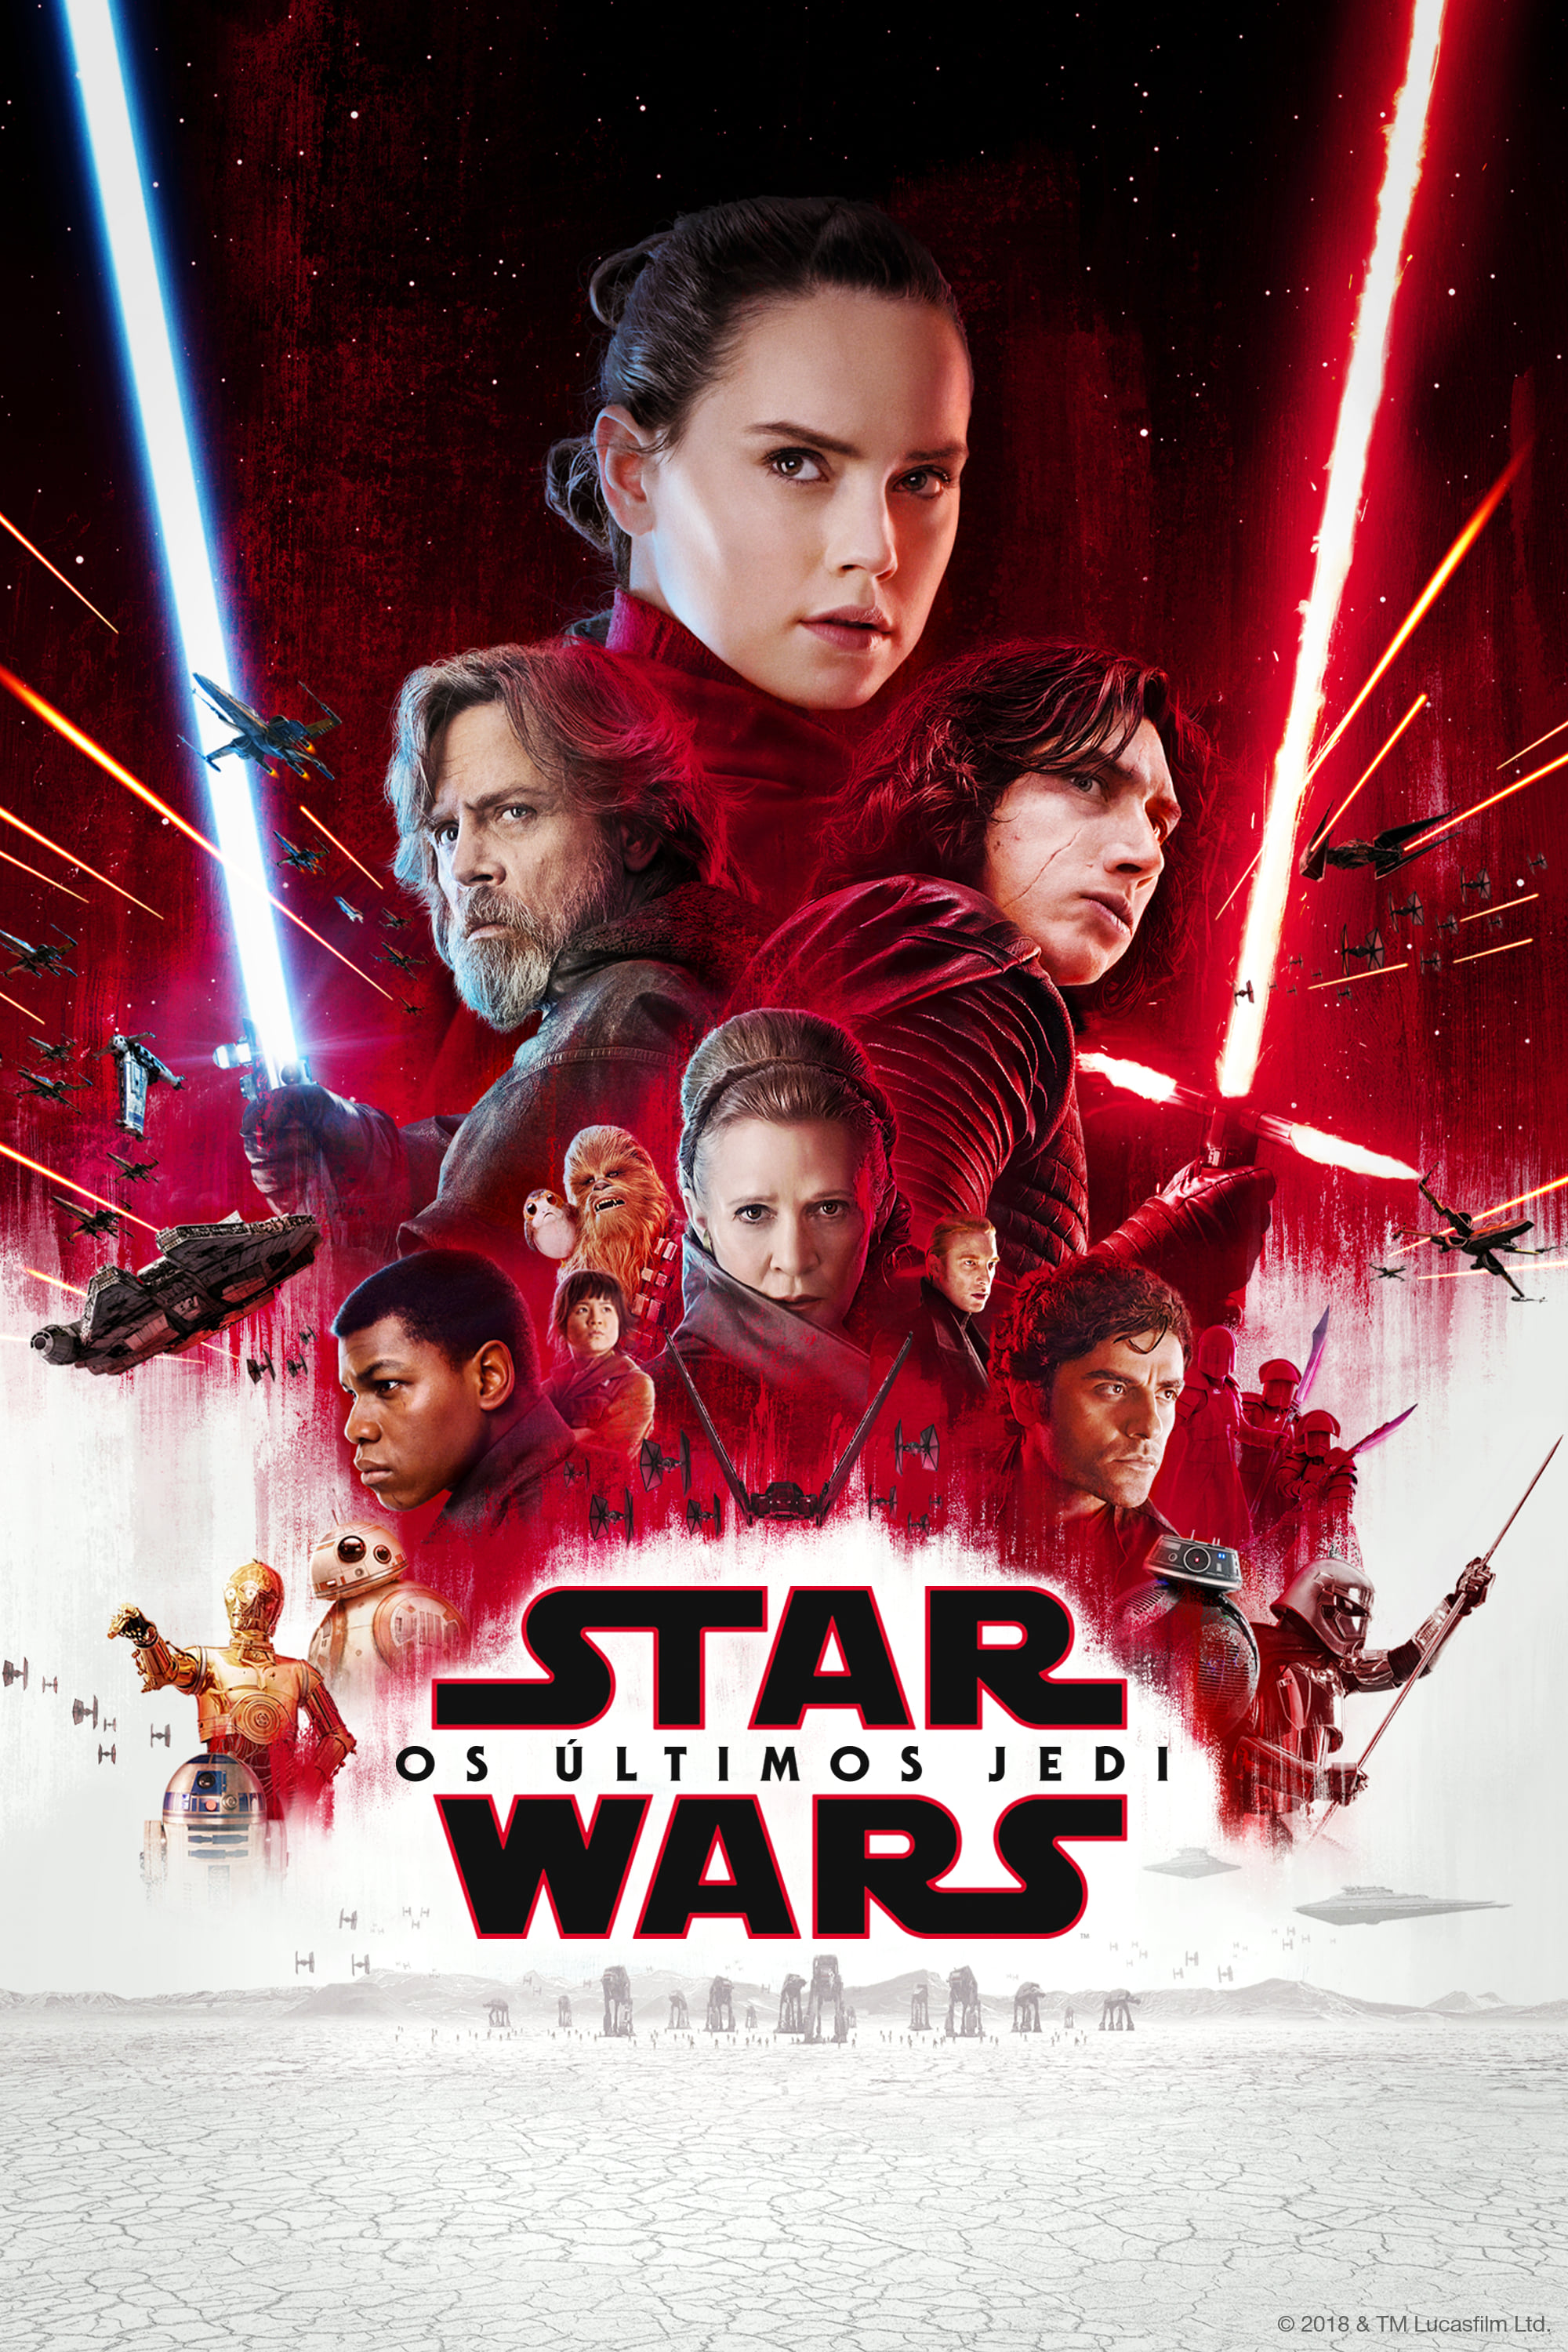 Star Wars 8 Os Últimos Jedi Torrent (2018) Dual Áudio Dublado BluRay 1080p Download